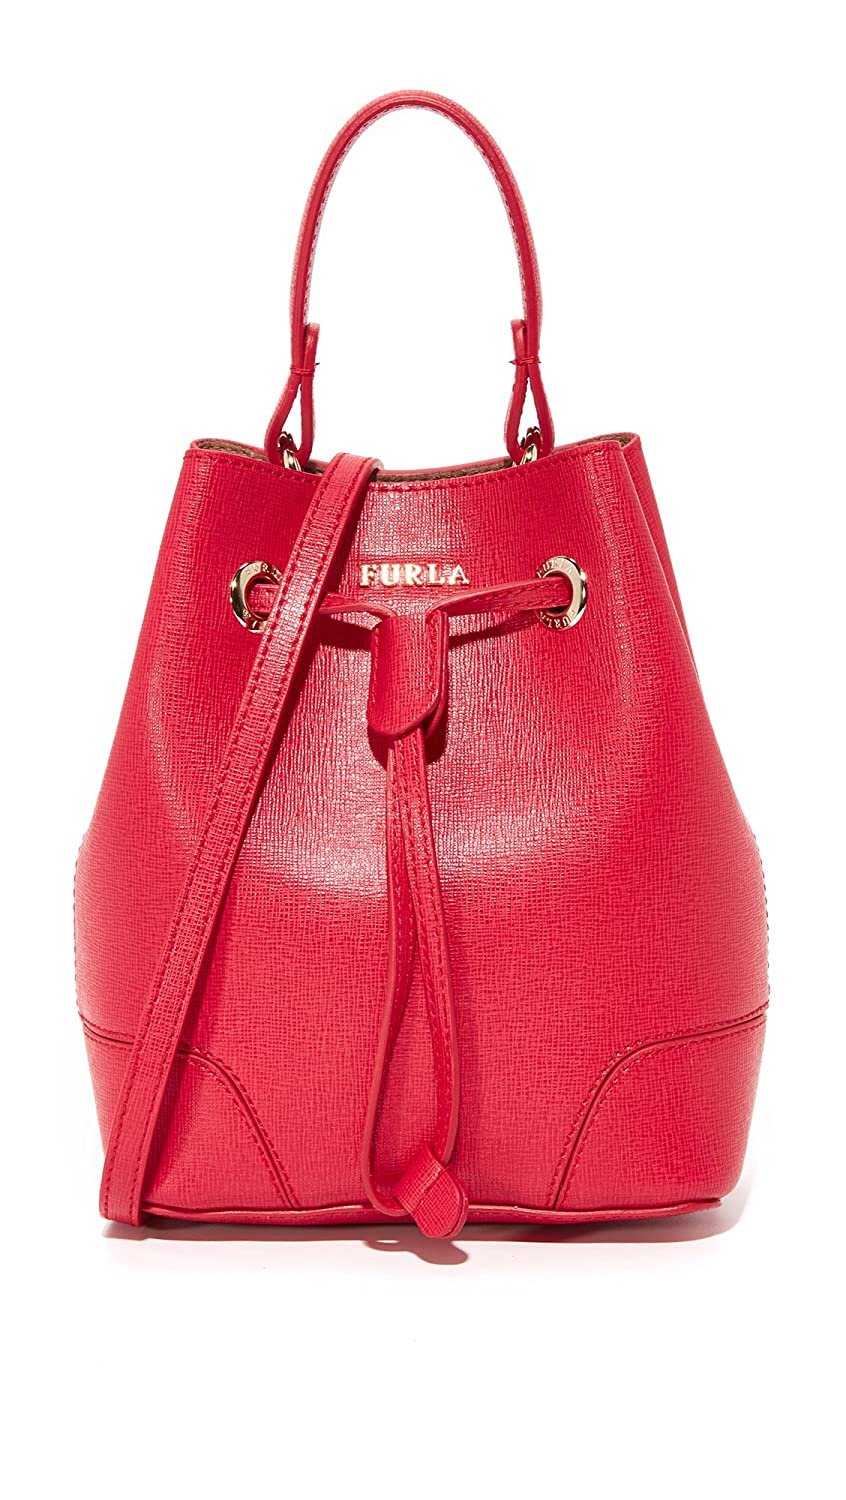 Furla Womens Stacy Mini Drawstring Bag Ruby One Size Furla-Women/'s